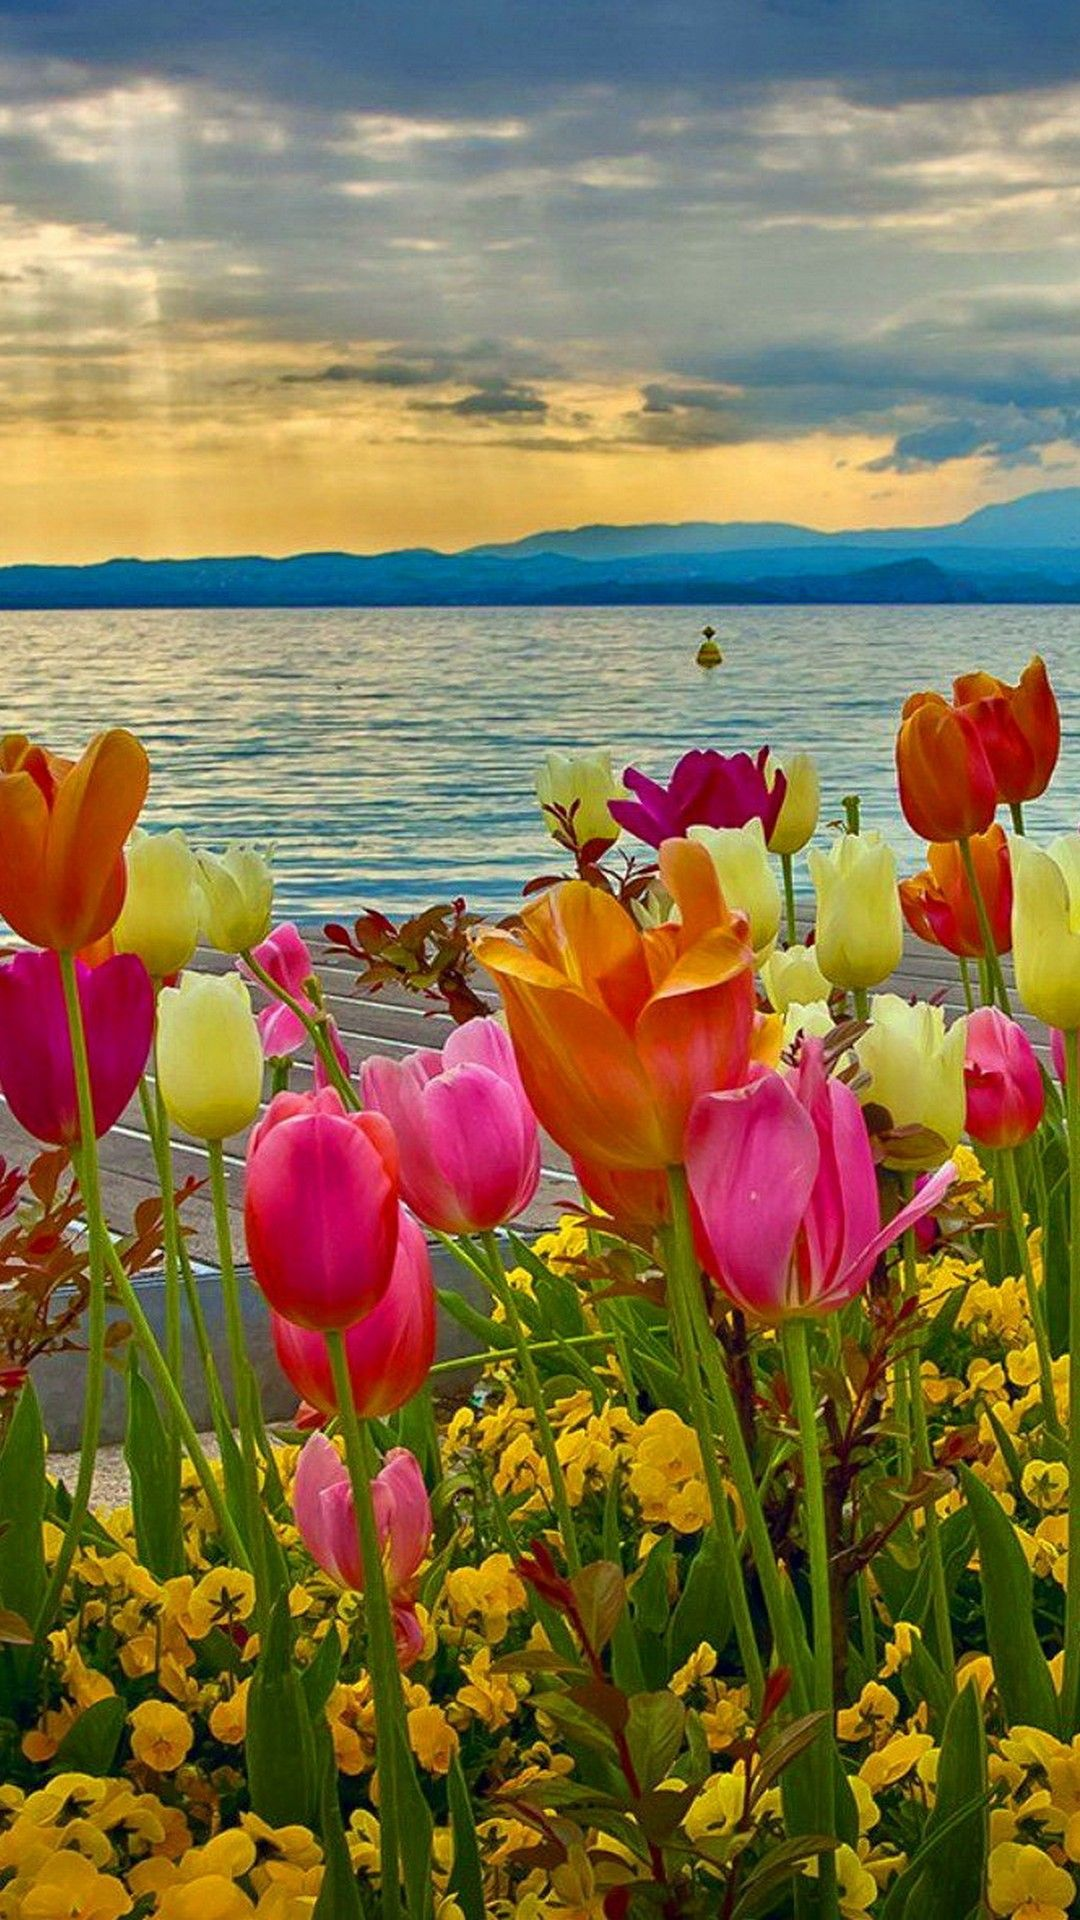 Iphone 7 Wallpaper Spring Flowers Nature Spring Scenery Spring Wallpaper